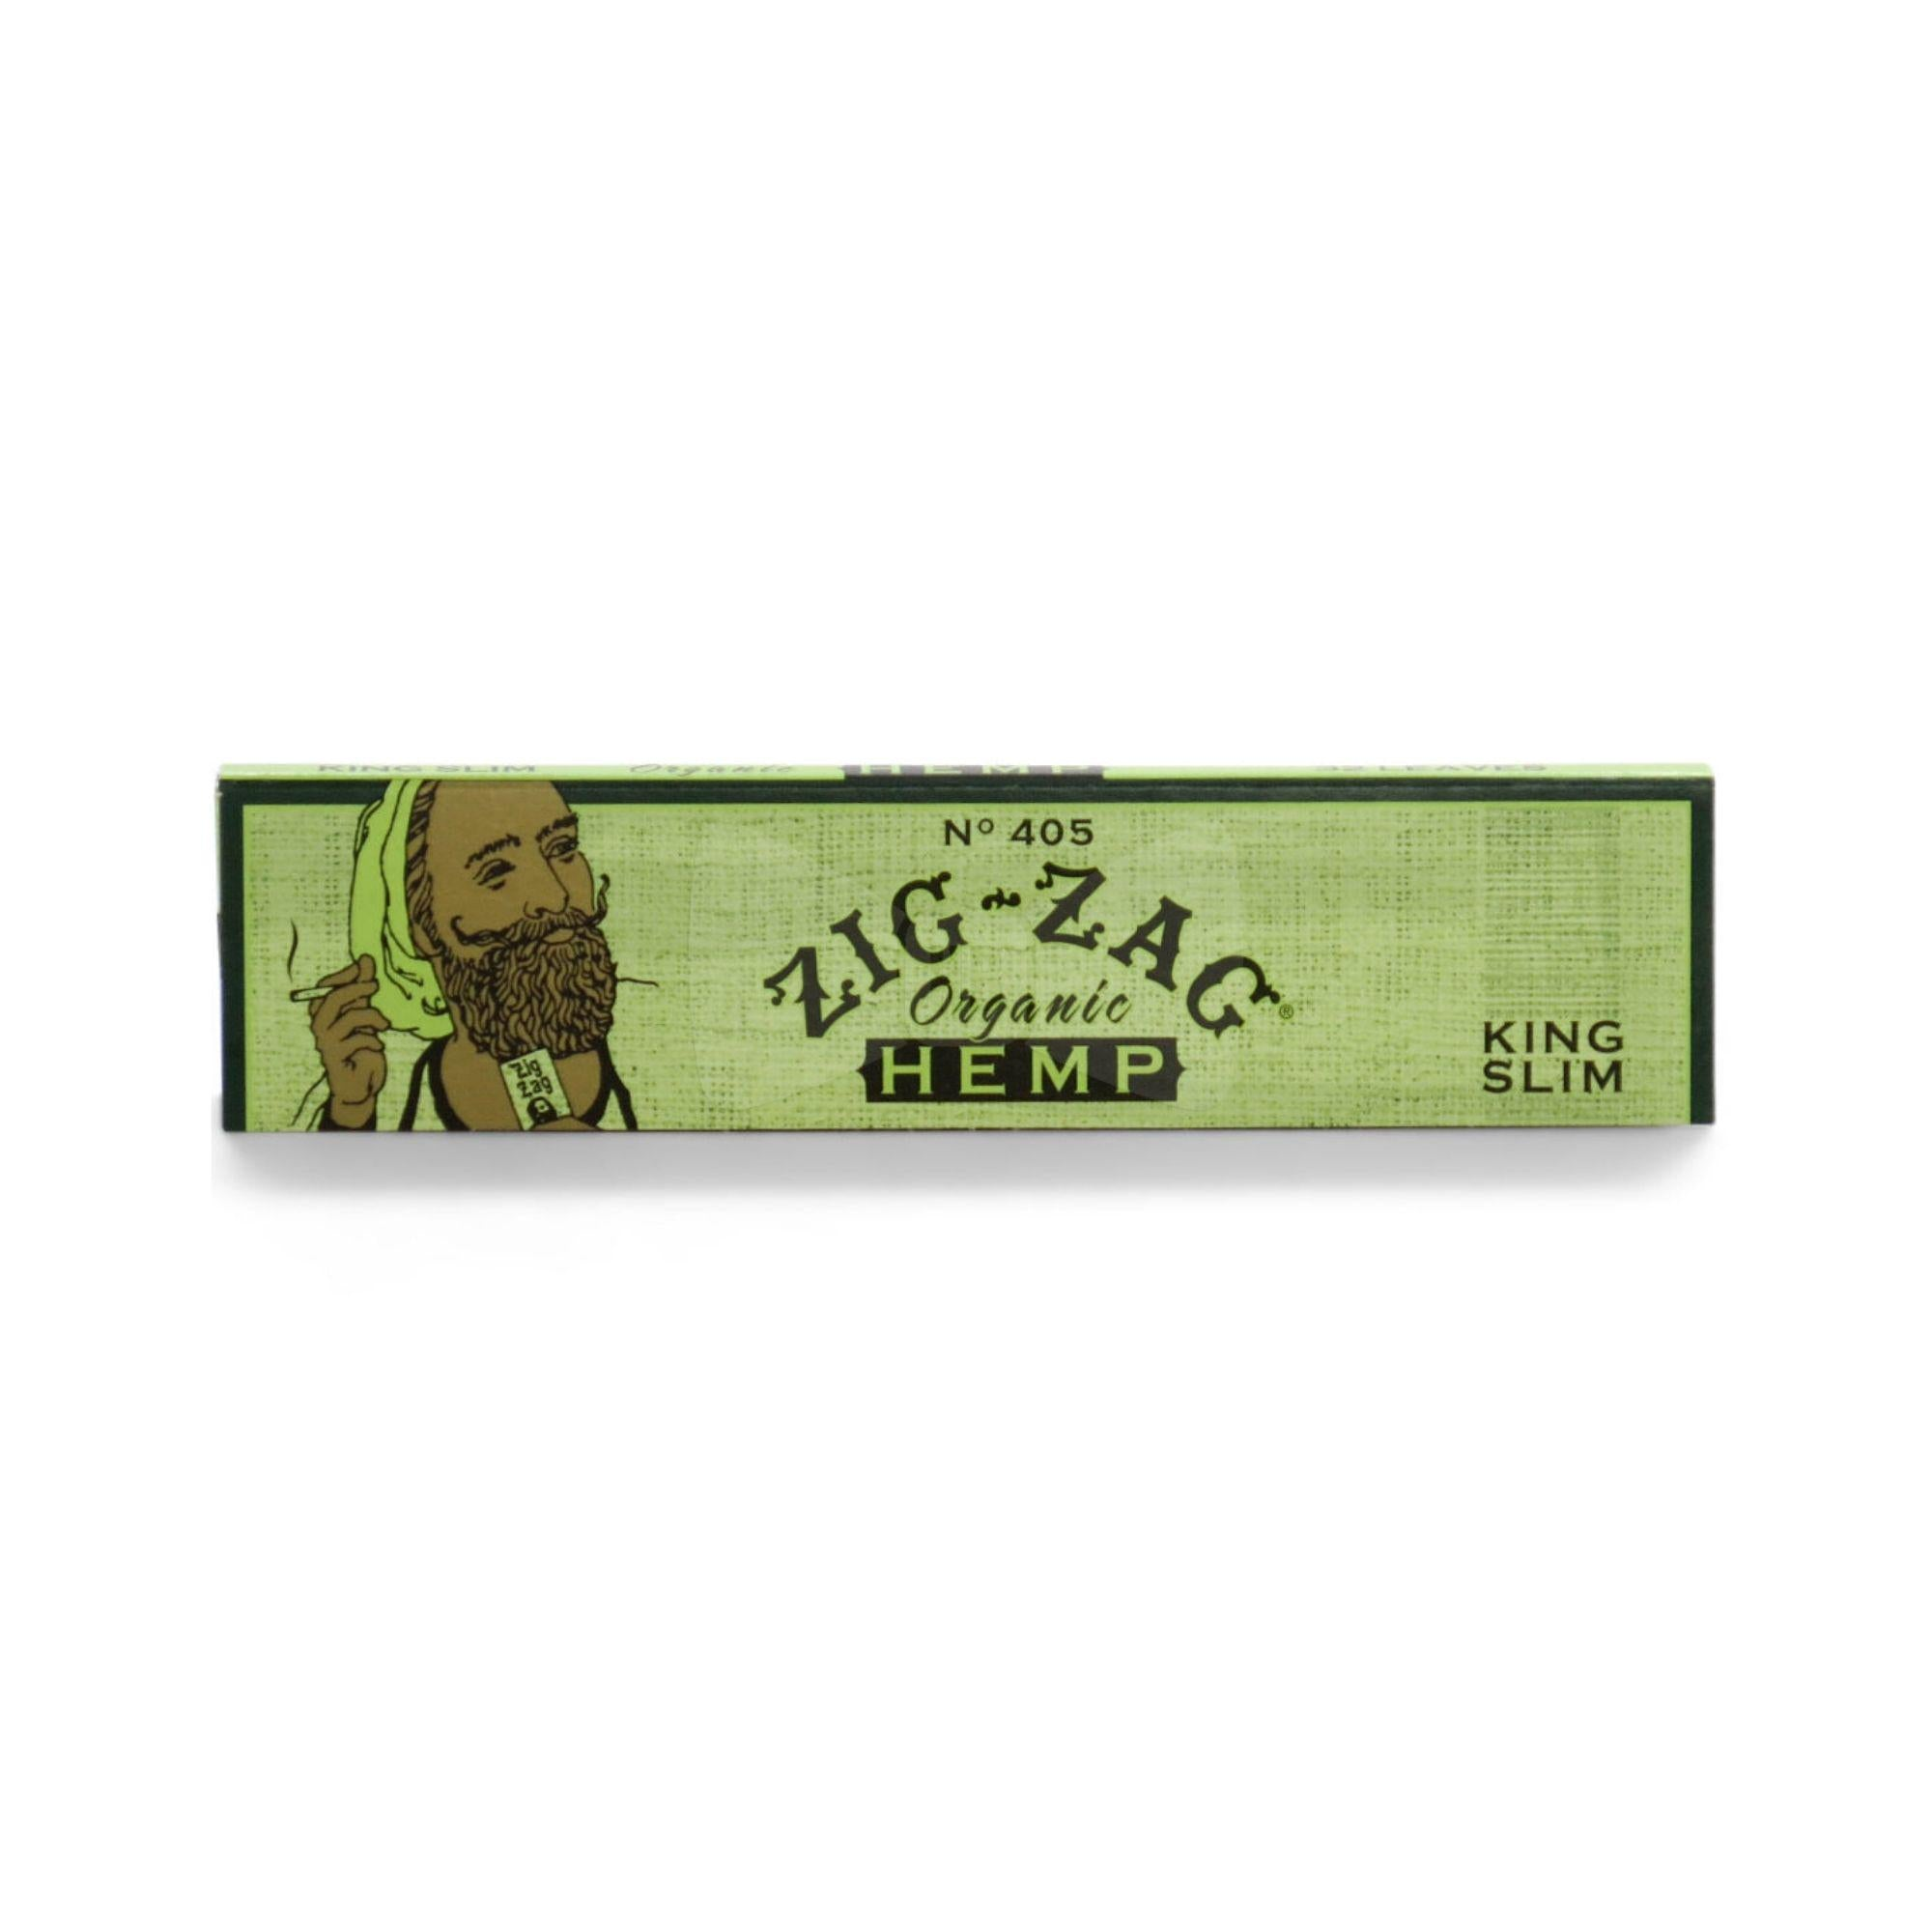 Zig Zag Organic Hemp King Slim Rolling Papers 1 Pack